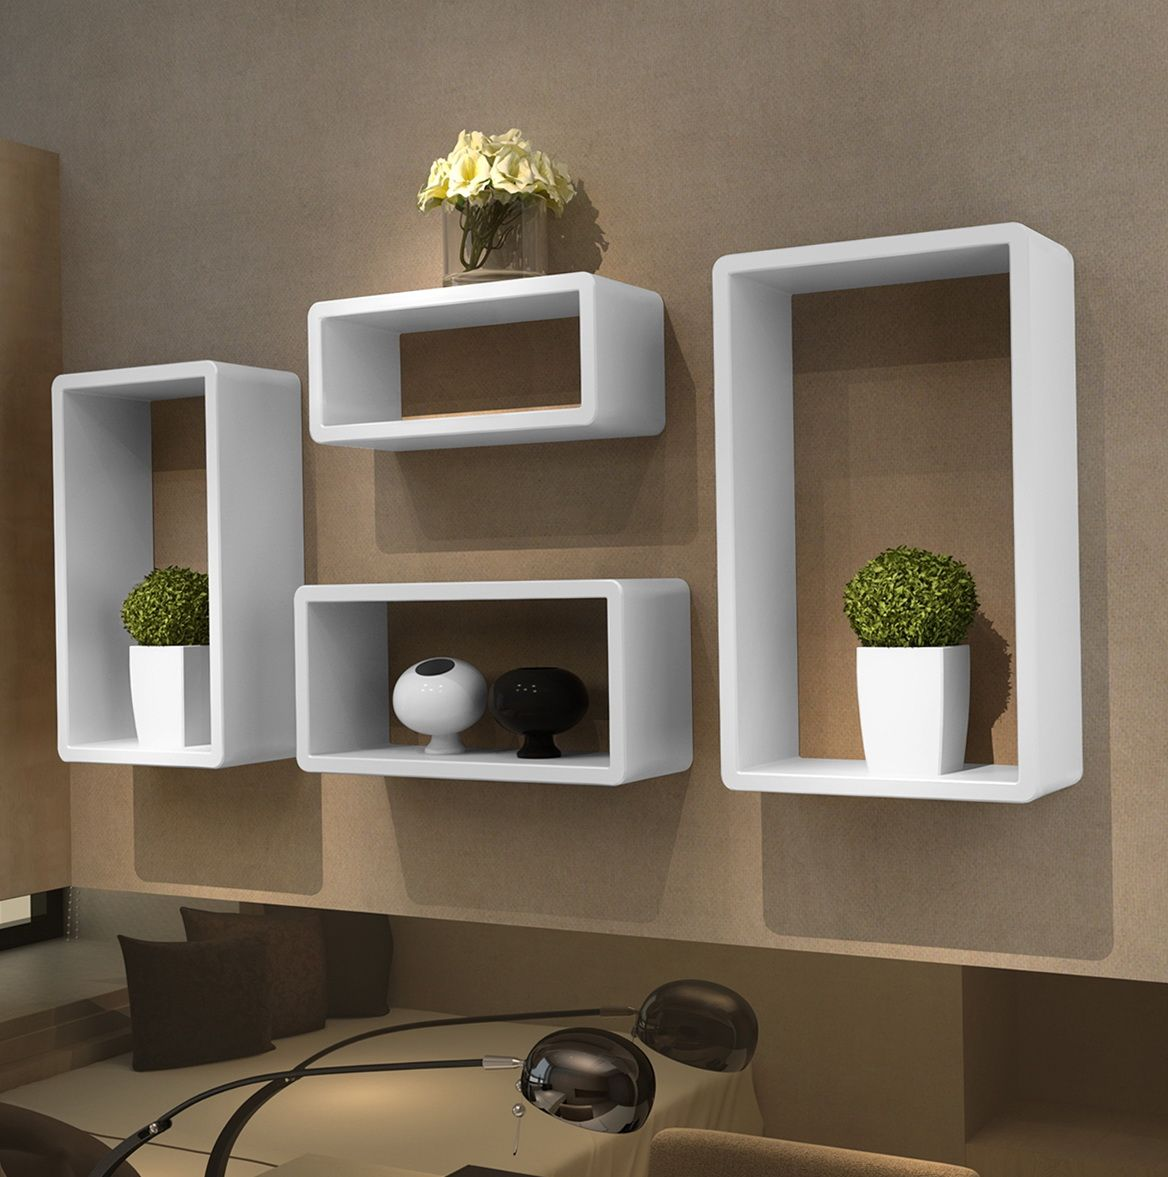 Wall mounted bookshelves ikea wall box shelf gembredeg for House shelves designs